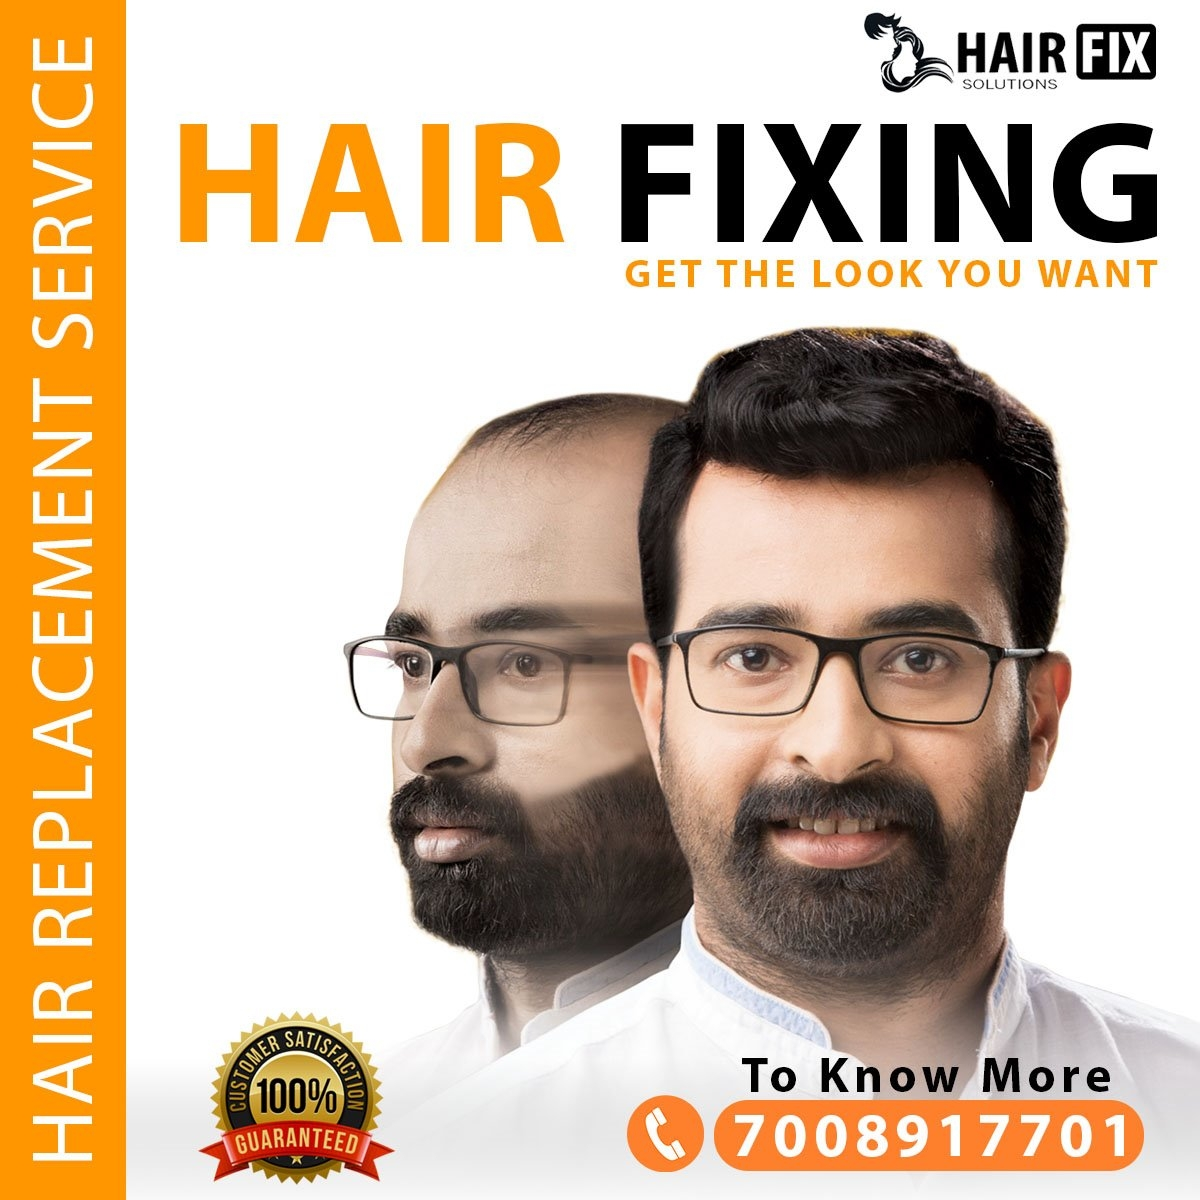 Hairfix Solutions (@hairfixsolutions) Cover Image